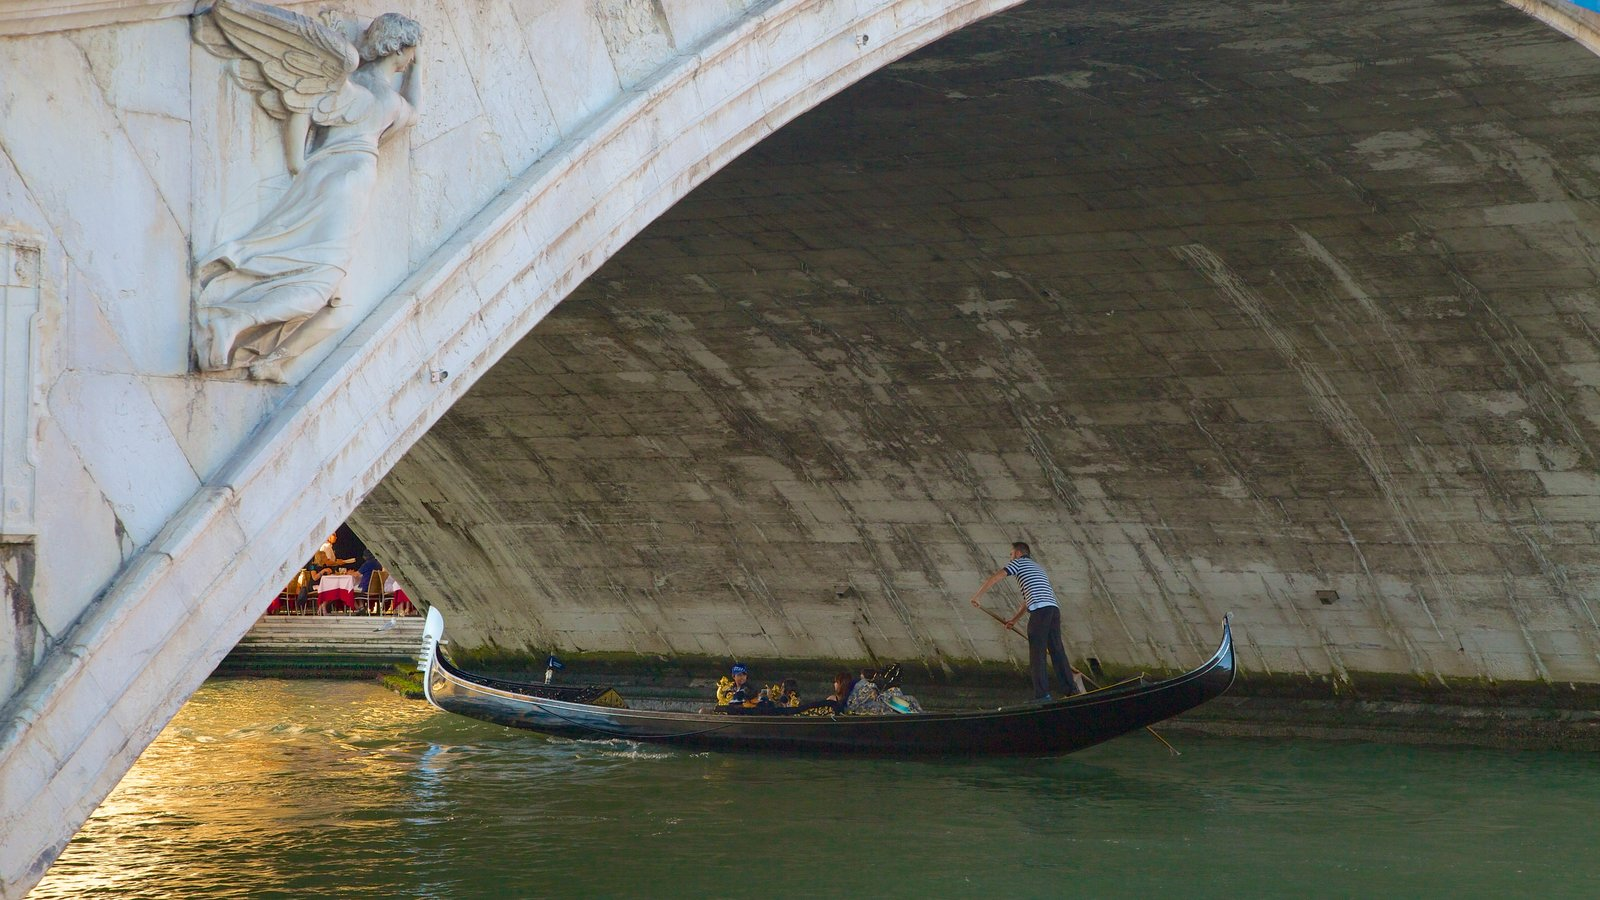 Venice which includes kayaking or canoeing and a river or creek